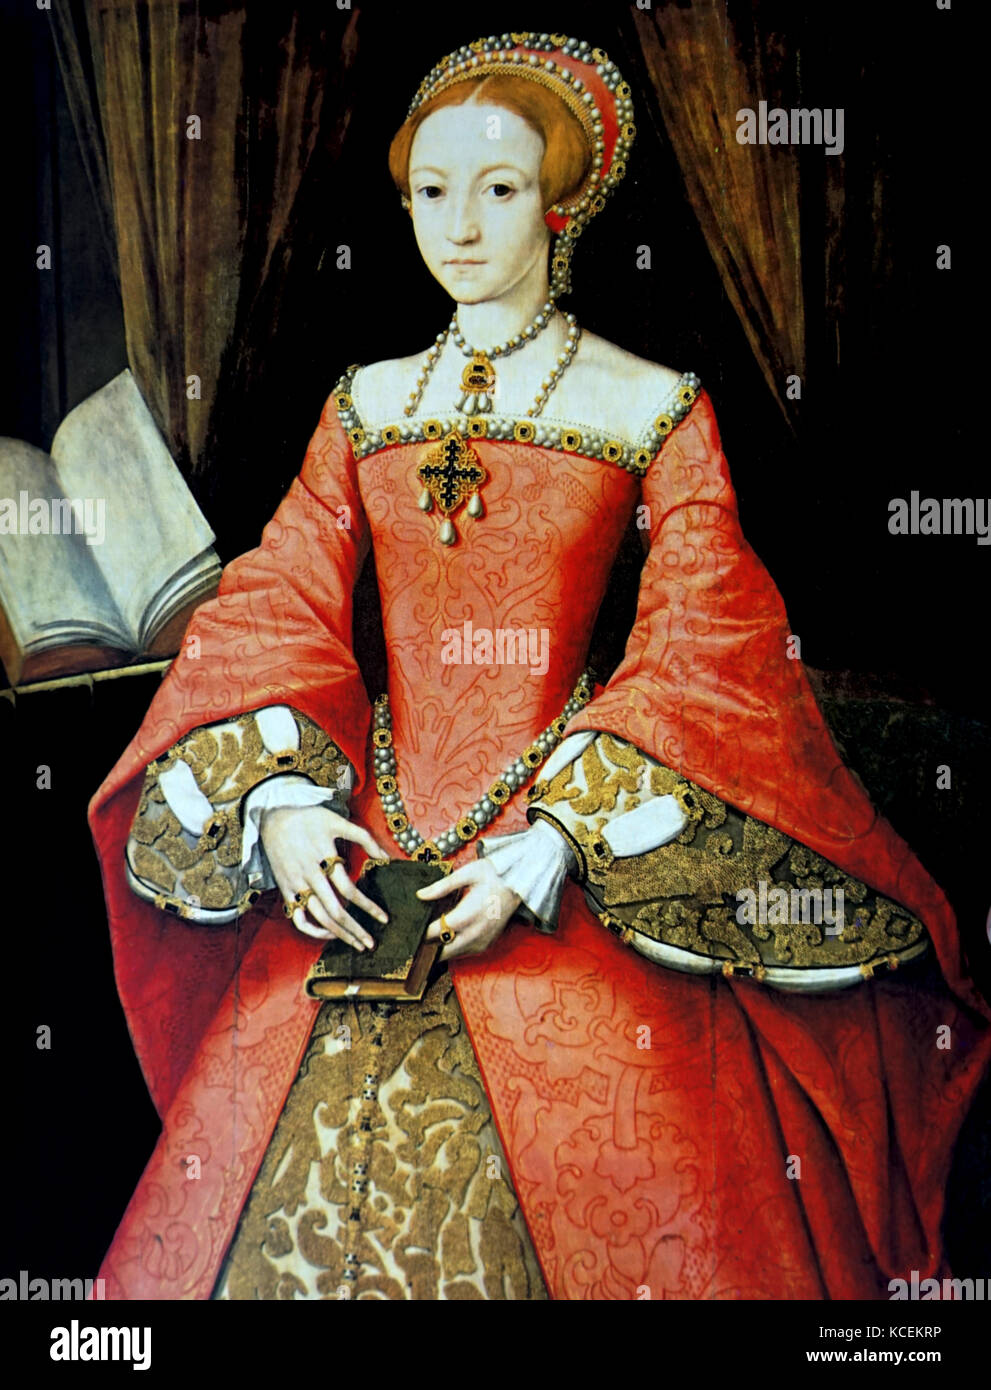 Sessel Queen Elizabeth Queen Elizabeth Era Stock Photos Queen Elizabeth Era Stock